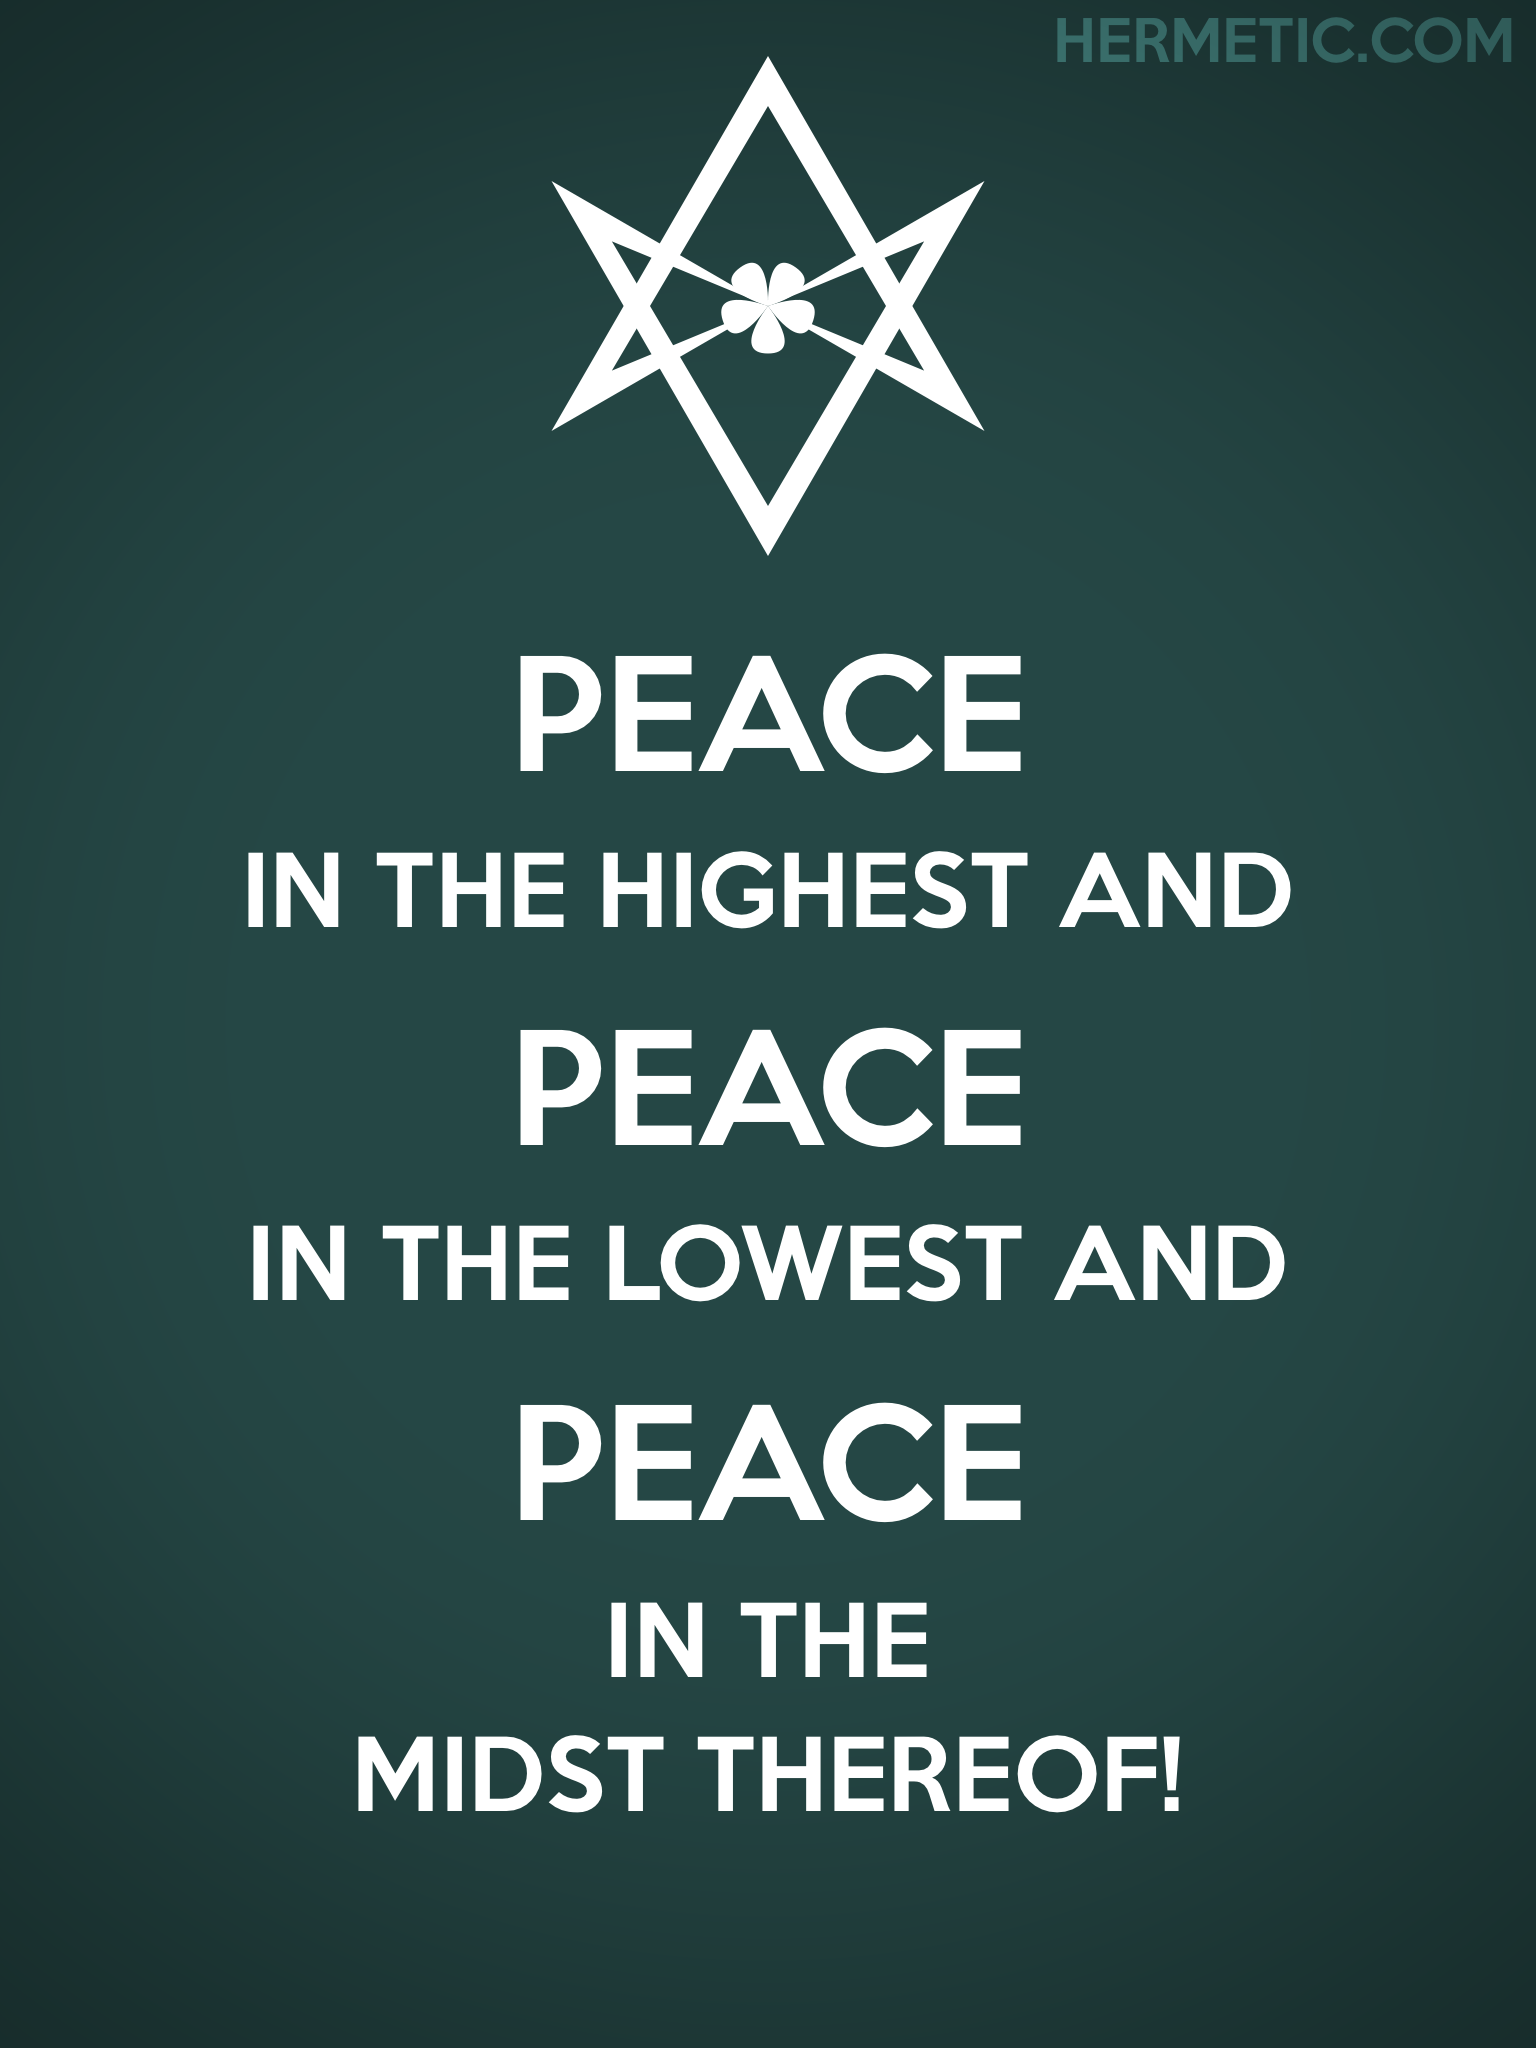 Unicursal PEACE PEACE PEACE Propaganda Poster from Hermetic Library Office of the Ministry of Information